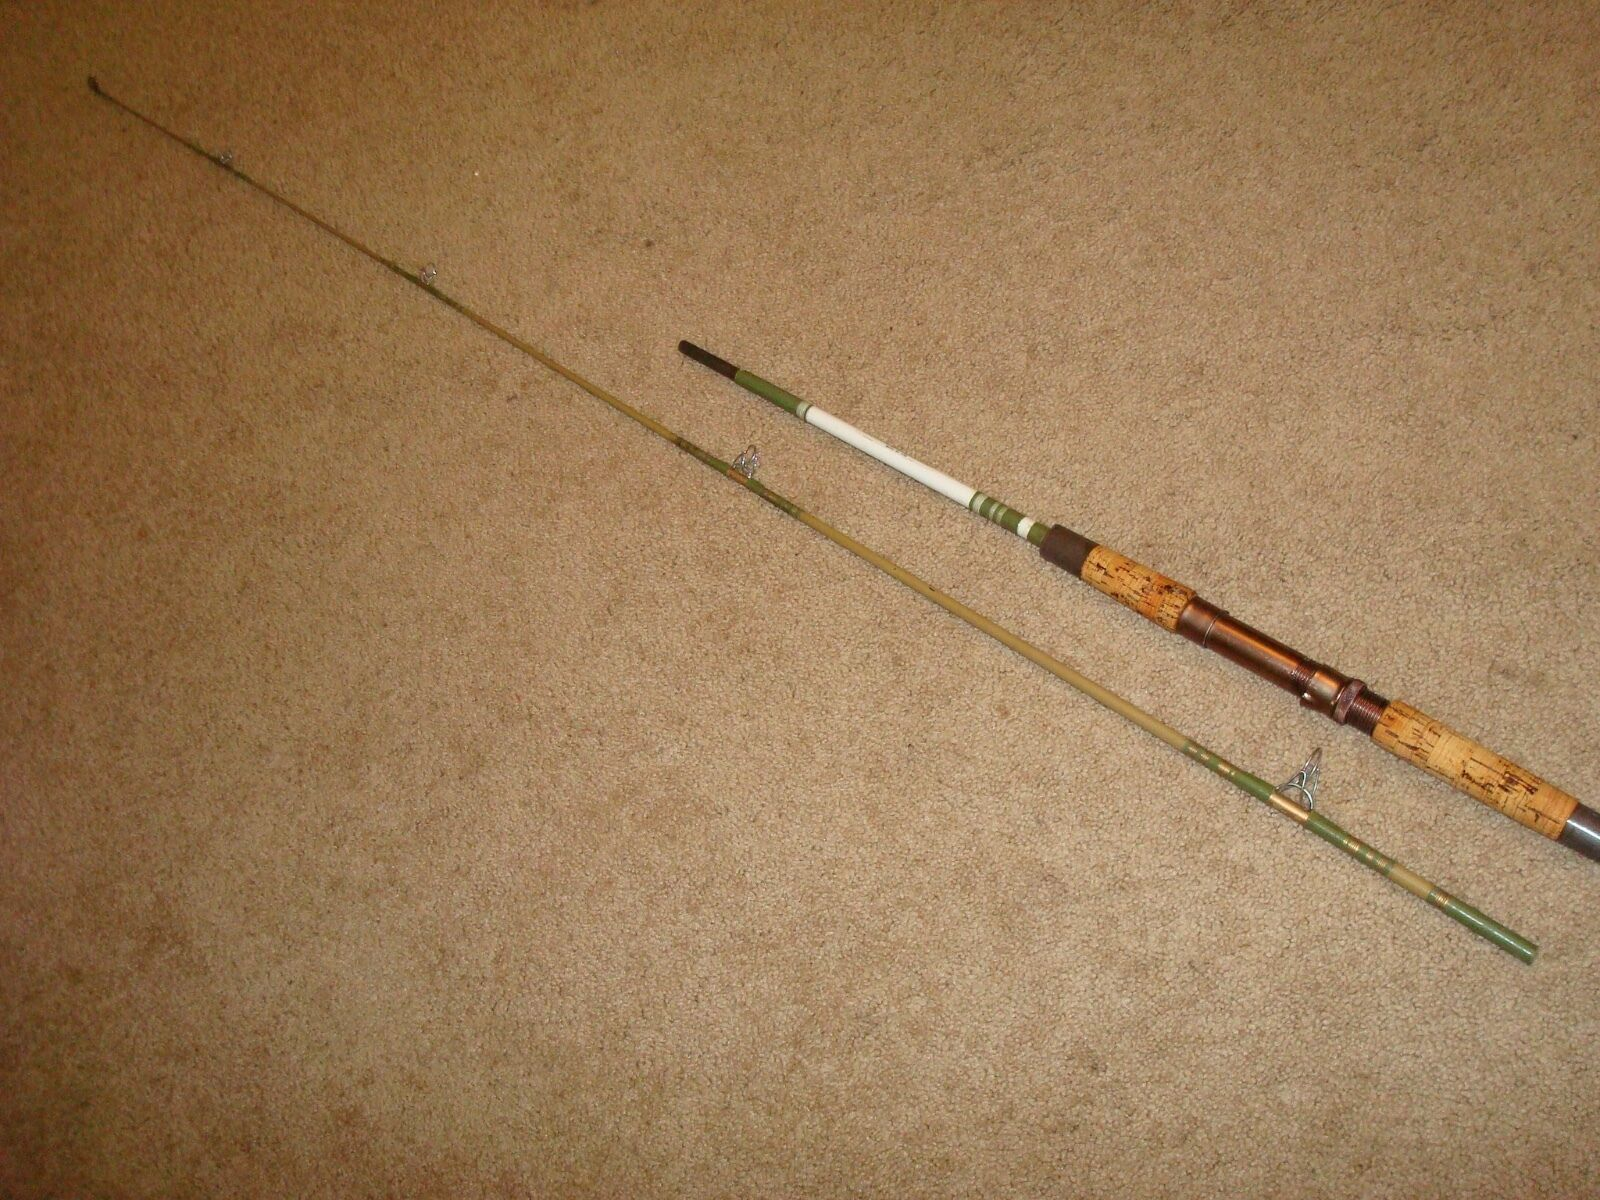 Vintage Grand Champion 2708 Light Spinning 6-1 2' Rod  by Grand Auto Stores  enjoy saving 30-50% off